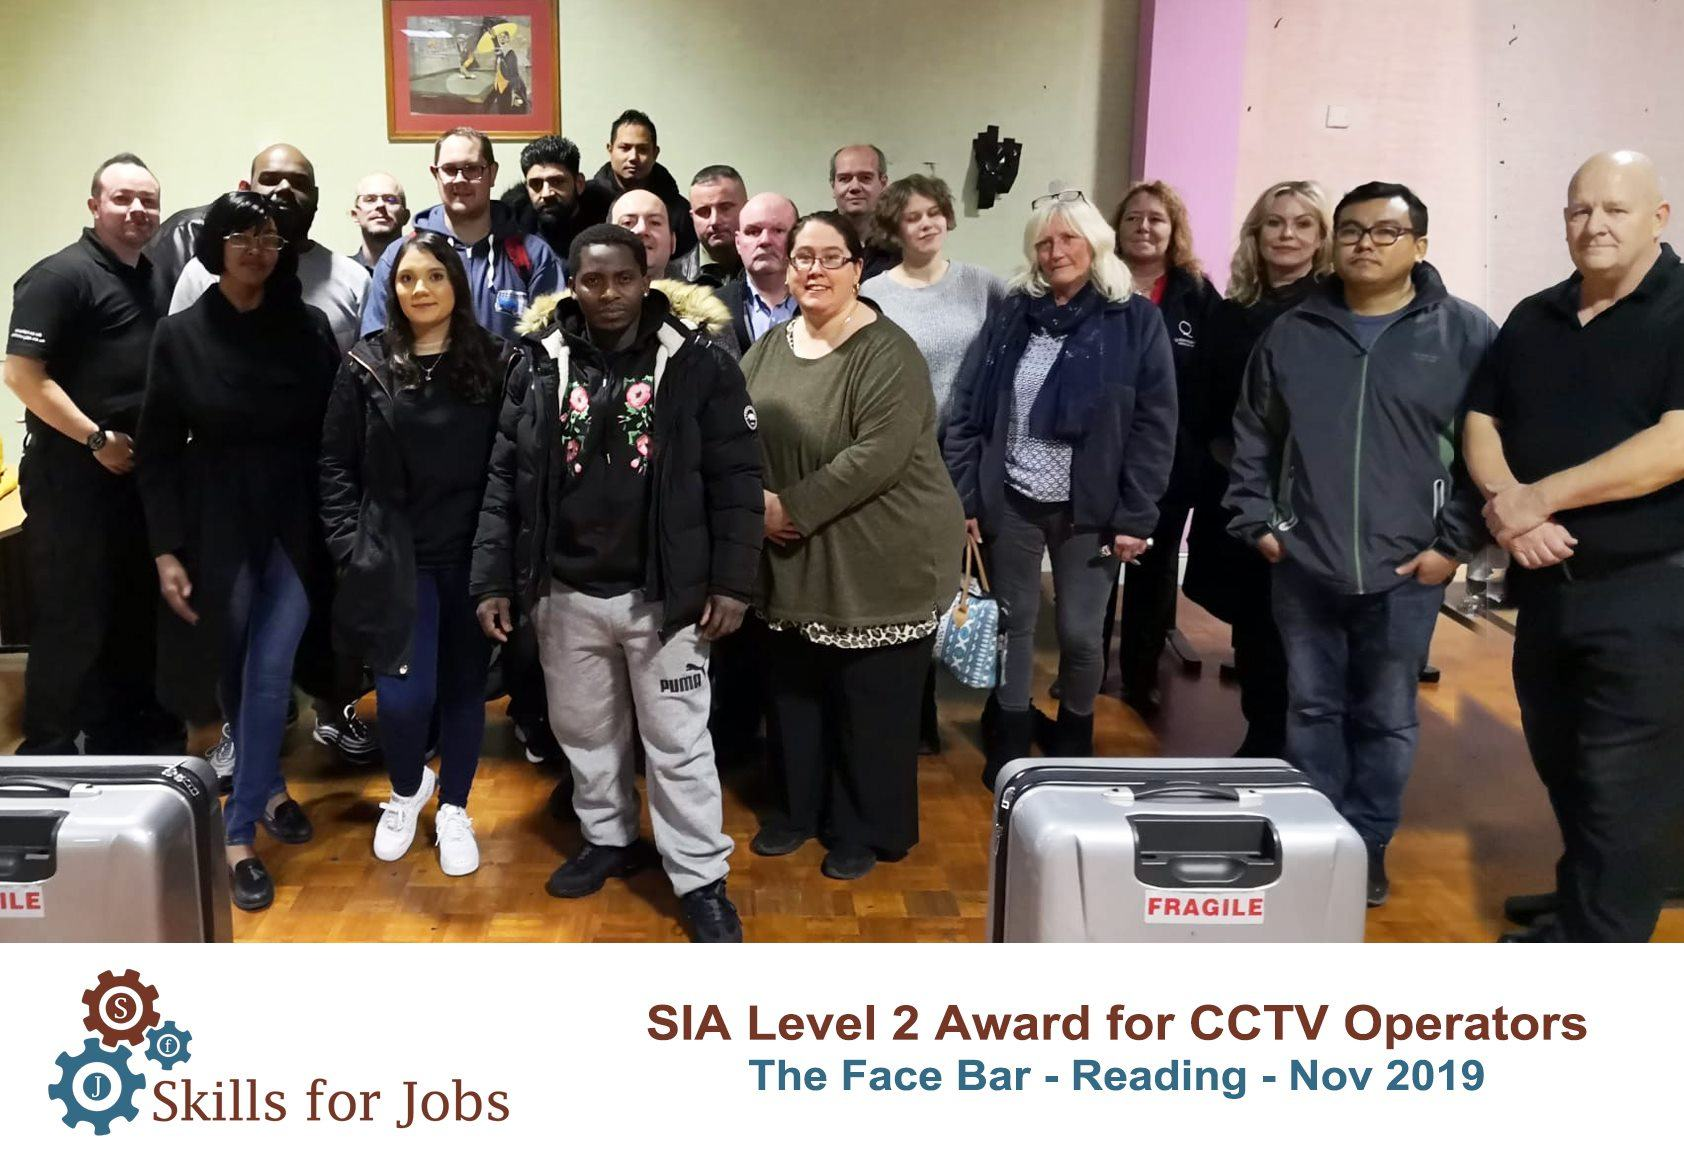 Reading - SIA Level 2 Award for CCTV Operators - November 2019